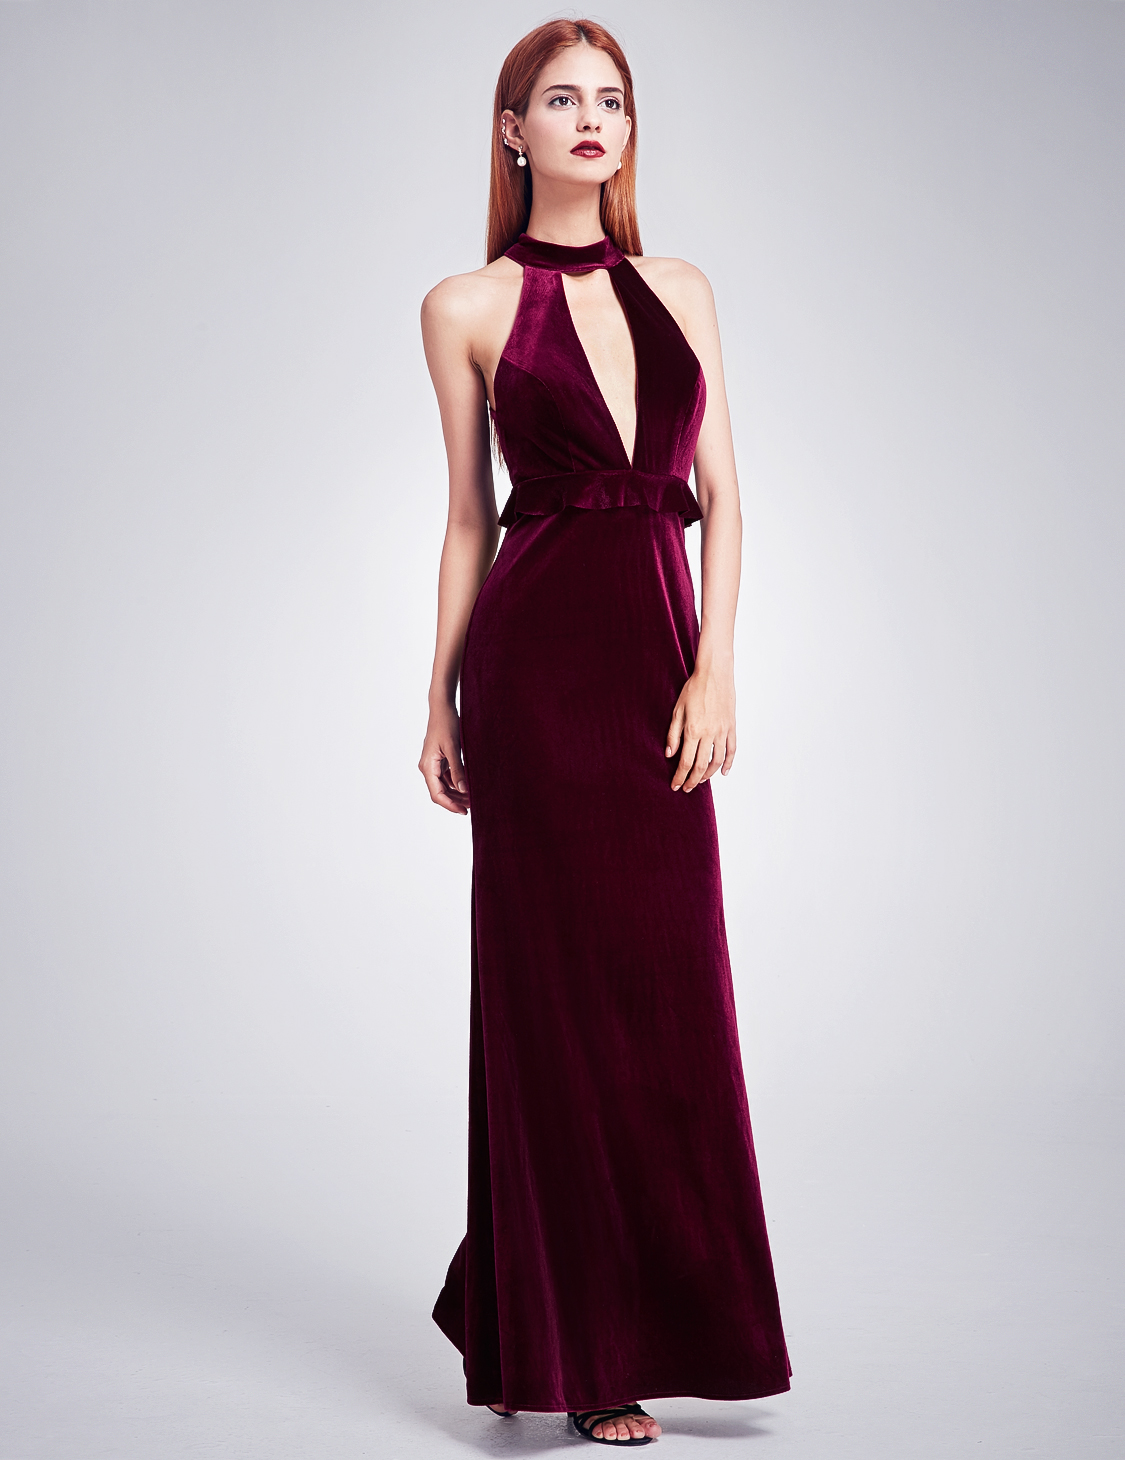 Long Cocktail Ever Pretty Halter Neck Long Cocktail Velvet Dress Evening